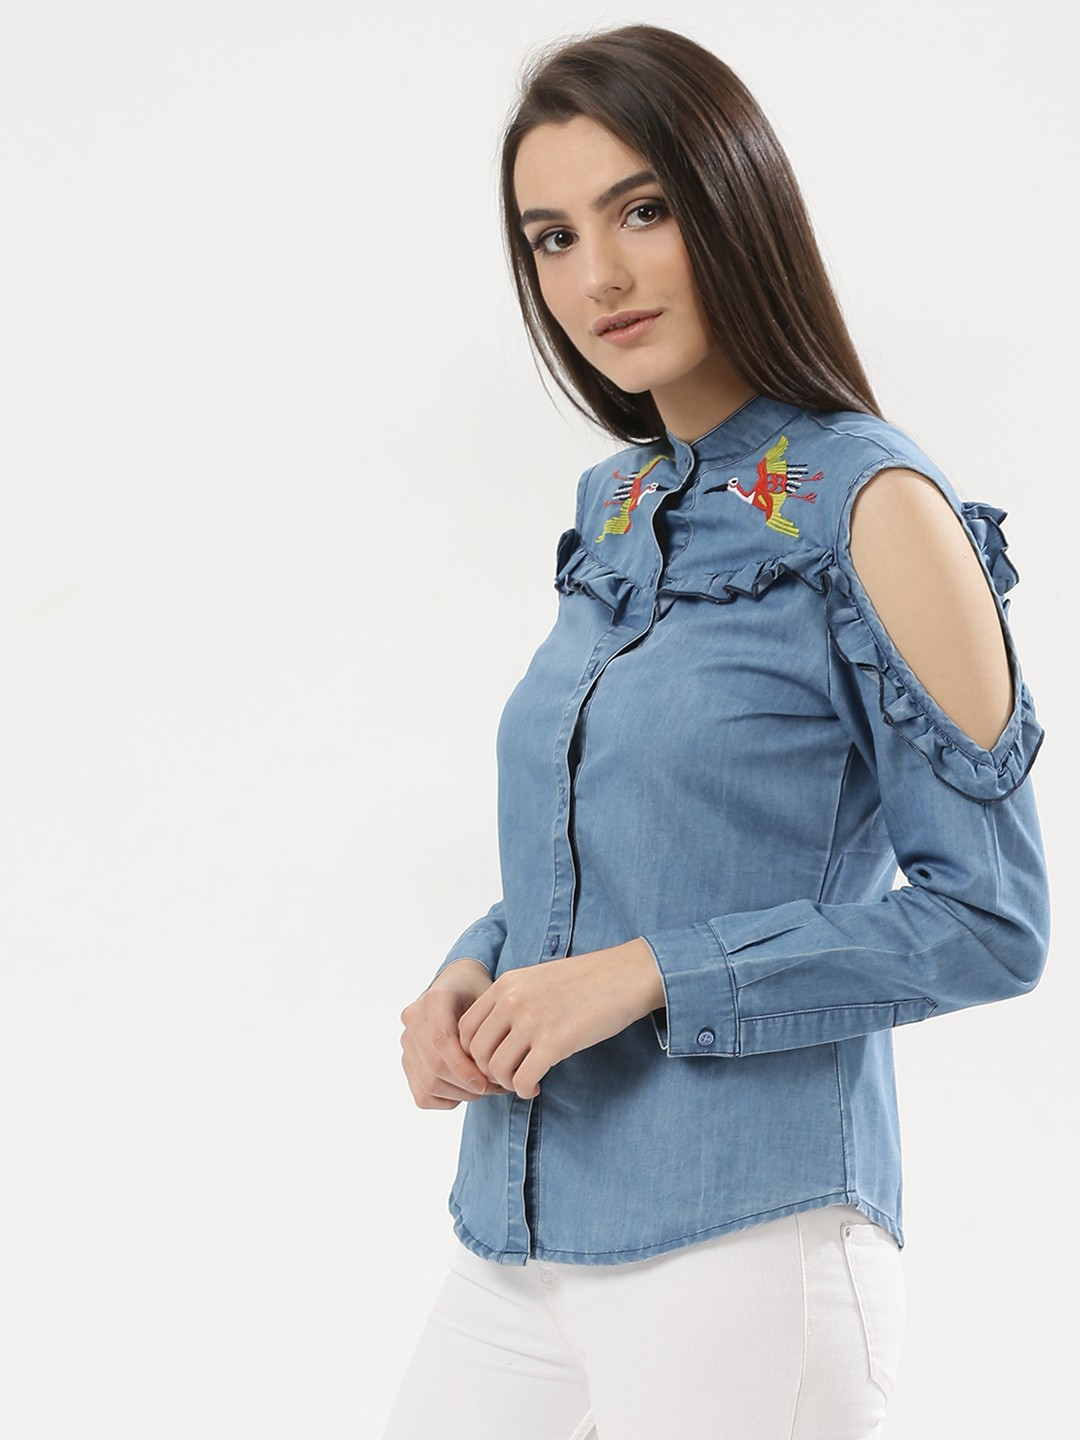 Ri-Dress Blue Denim Shirt With Bird Embroidery 1